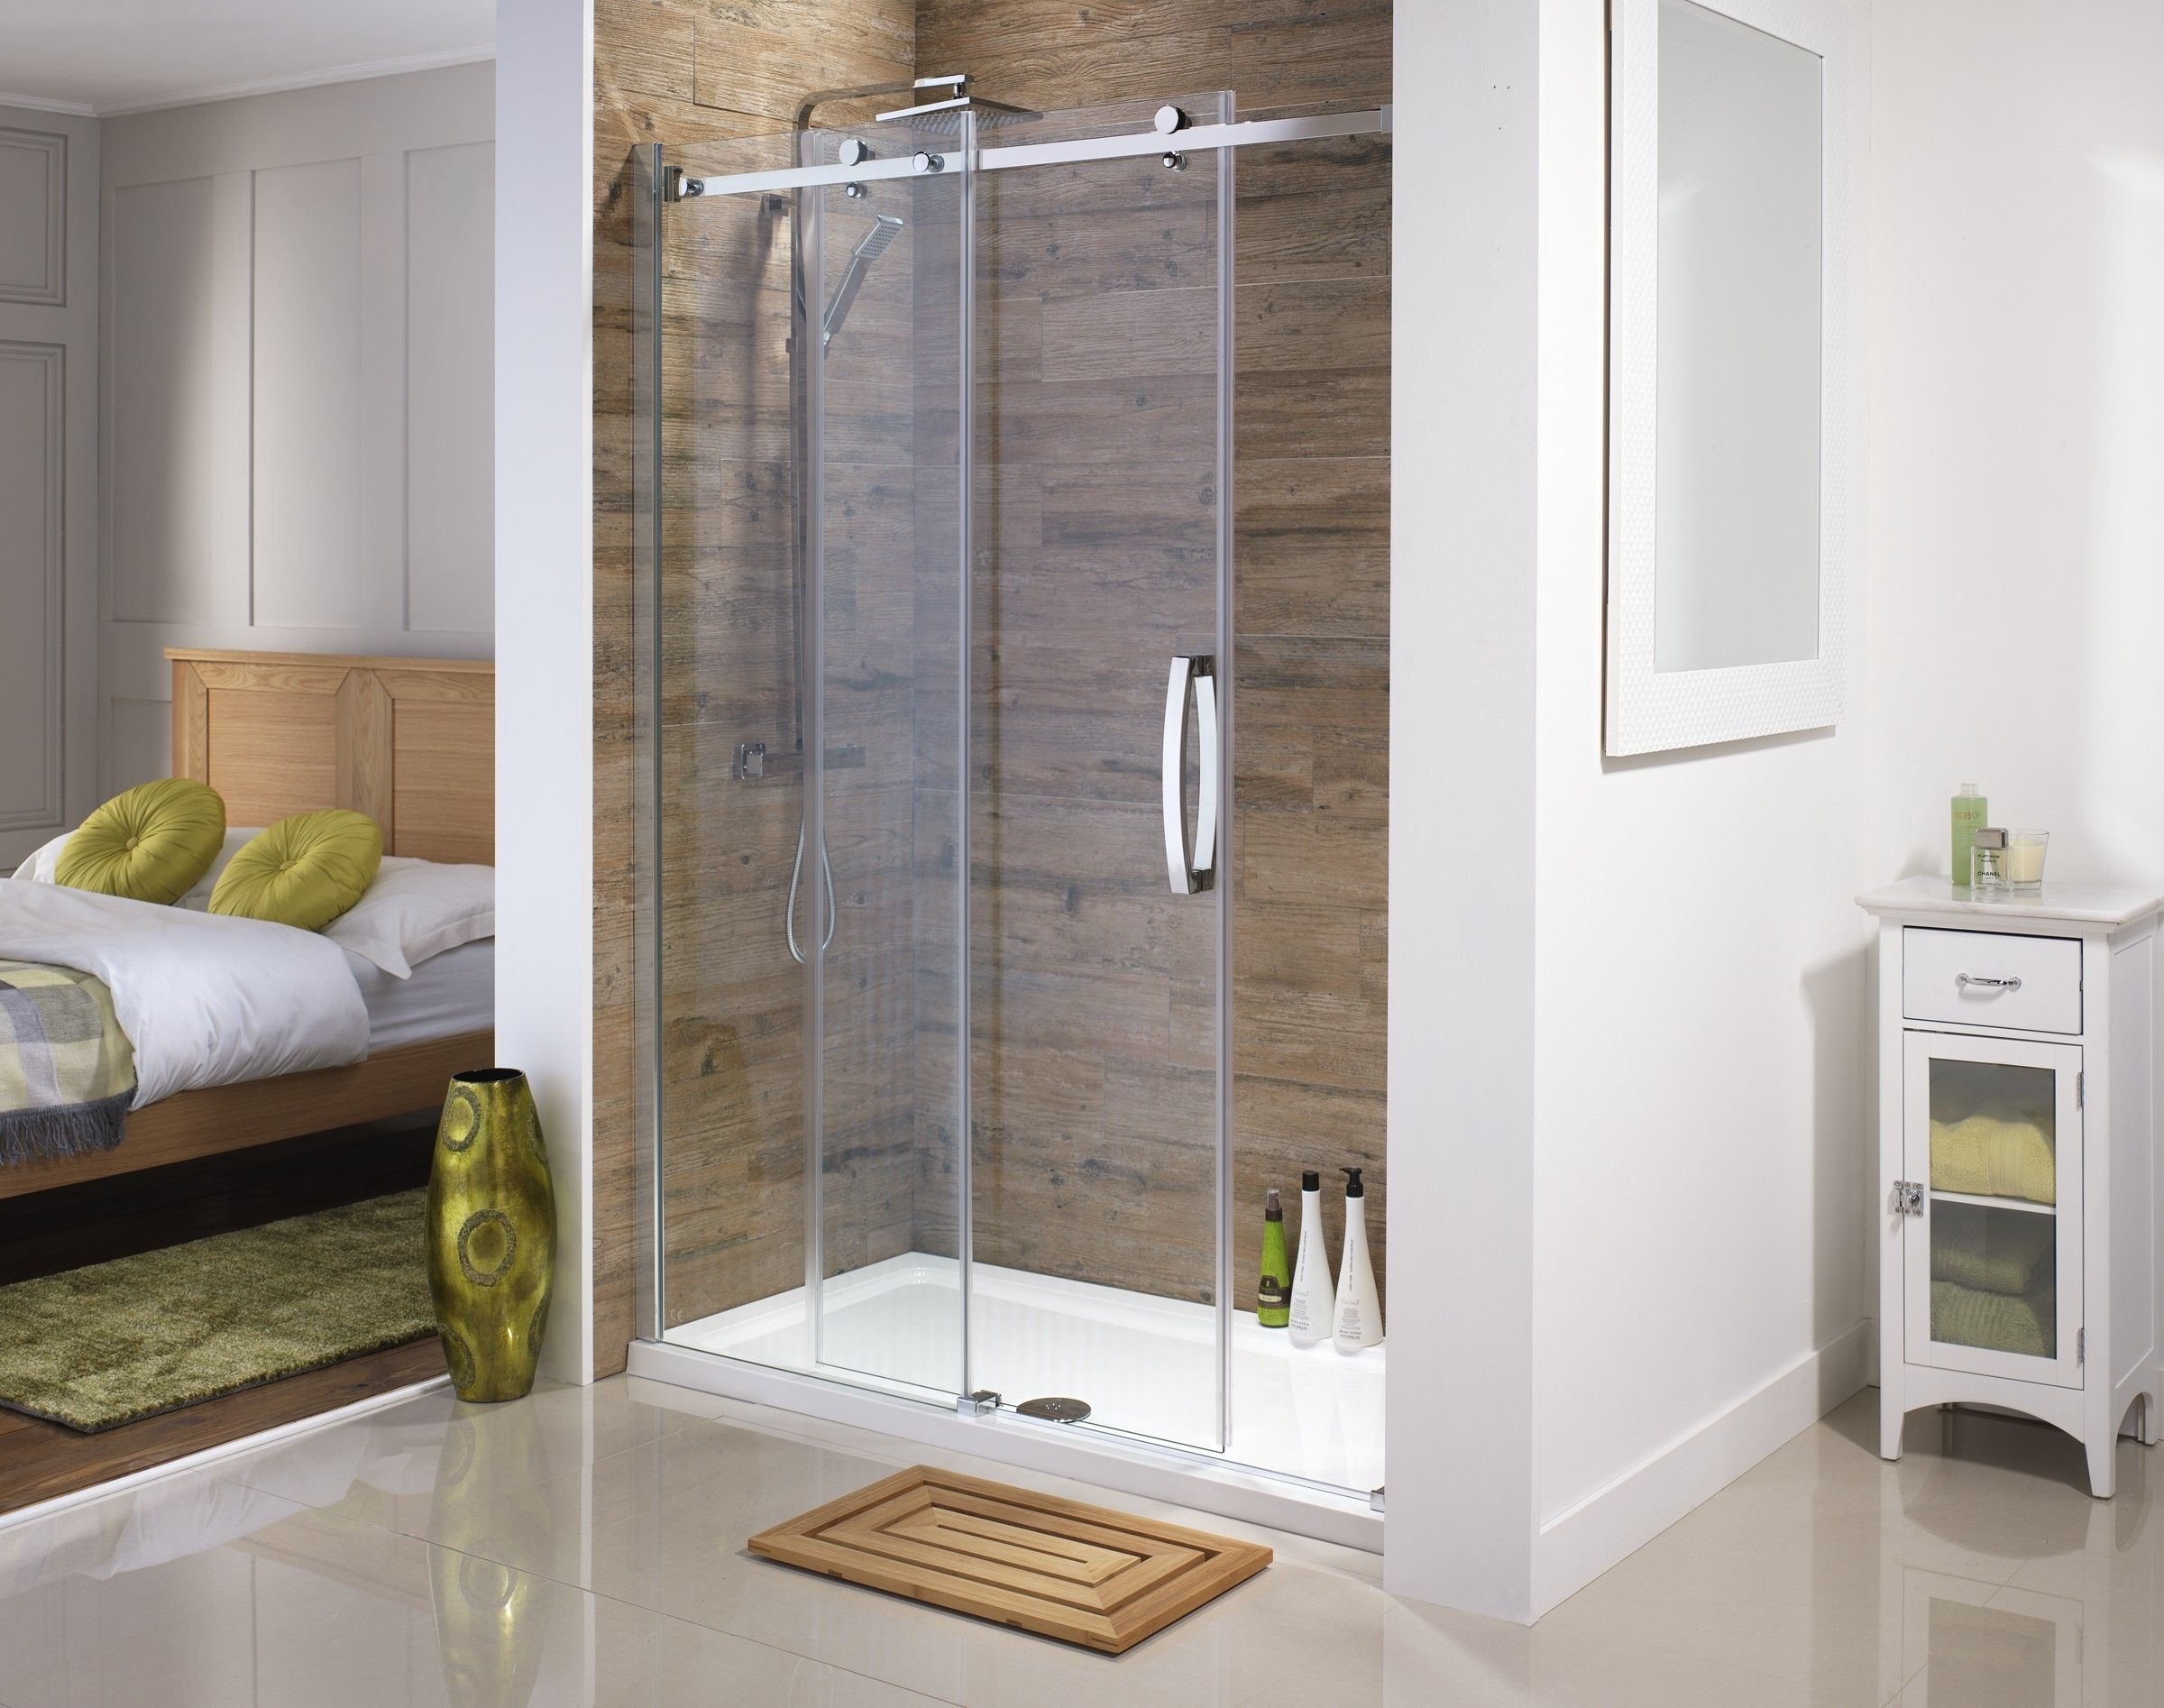 Glamorous Home Depot Shower Doors Designs You Will Want In Your Bathroom Right Now In 2020 Minimalist Bathroom Sliding Shower Door Elegant Bathroom Design